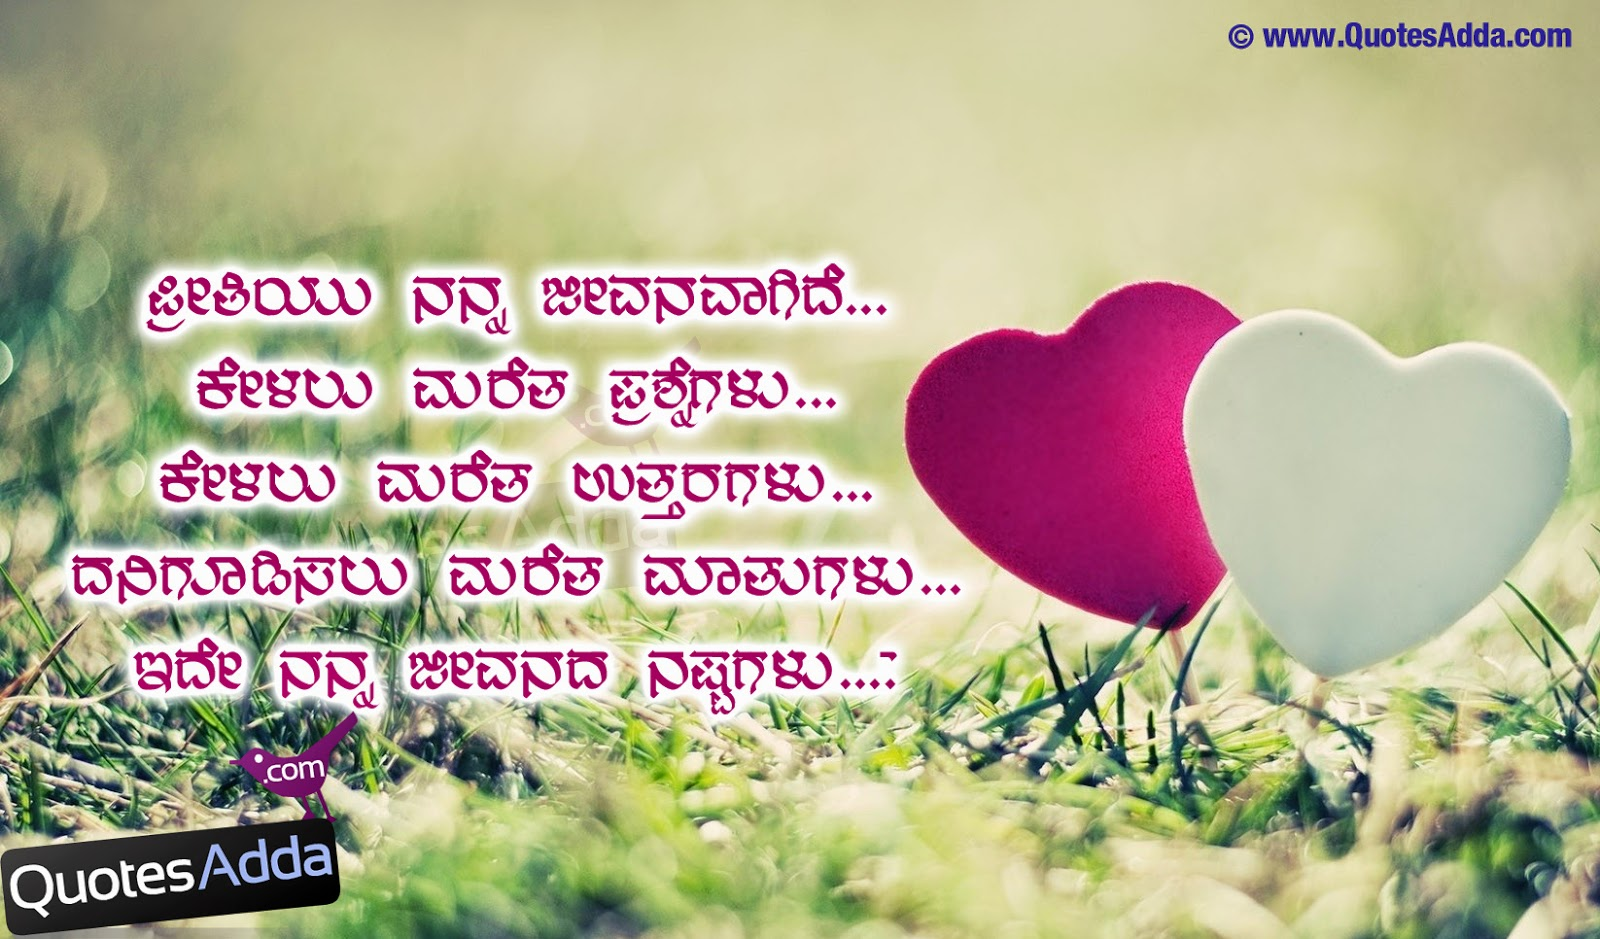 New Kannada Love Quotes Images Love Quotes Collection Within Hd Images